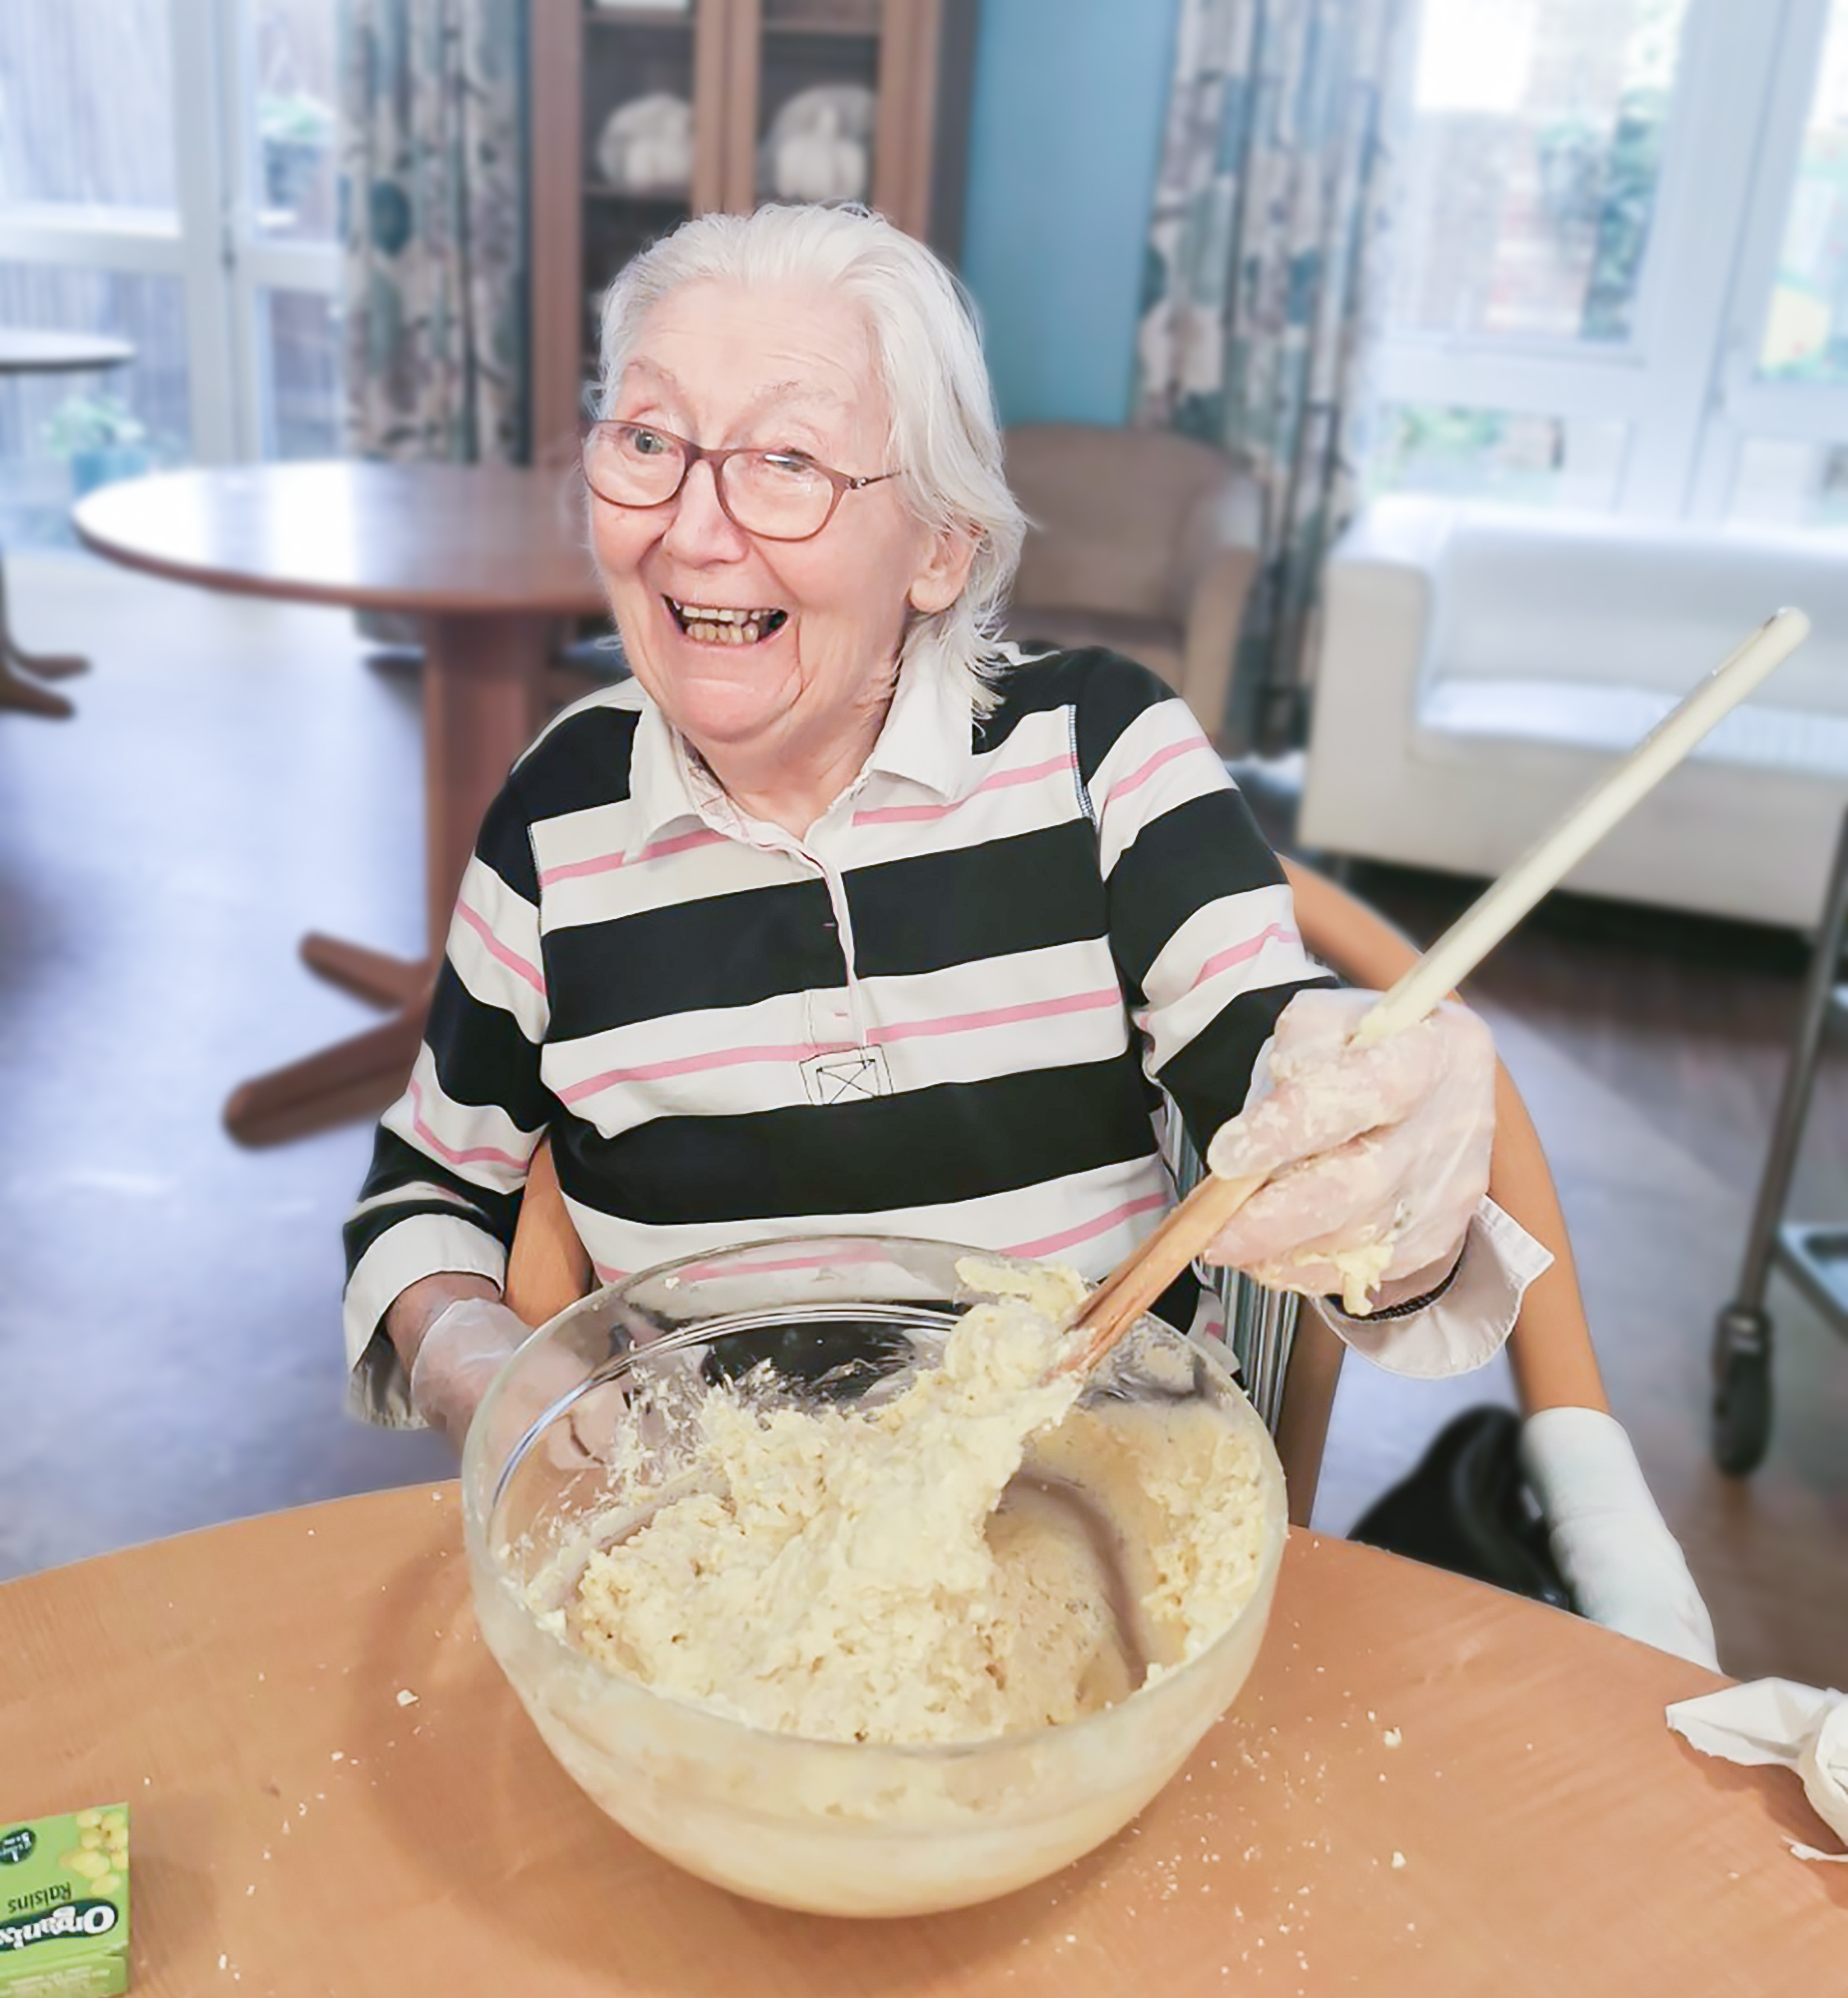 A Bernard Sunley care home resident baking scones